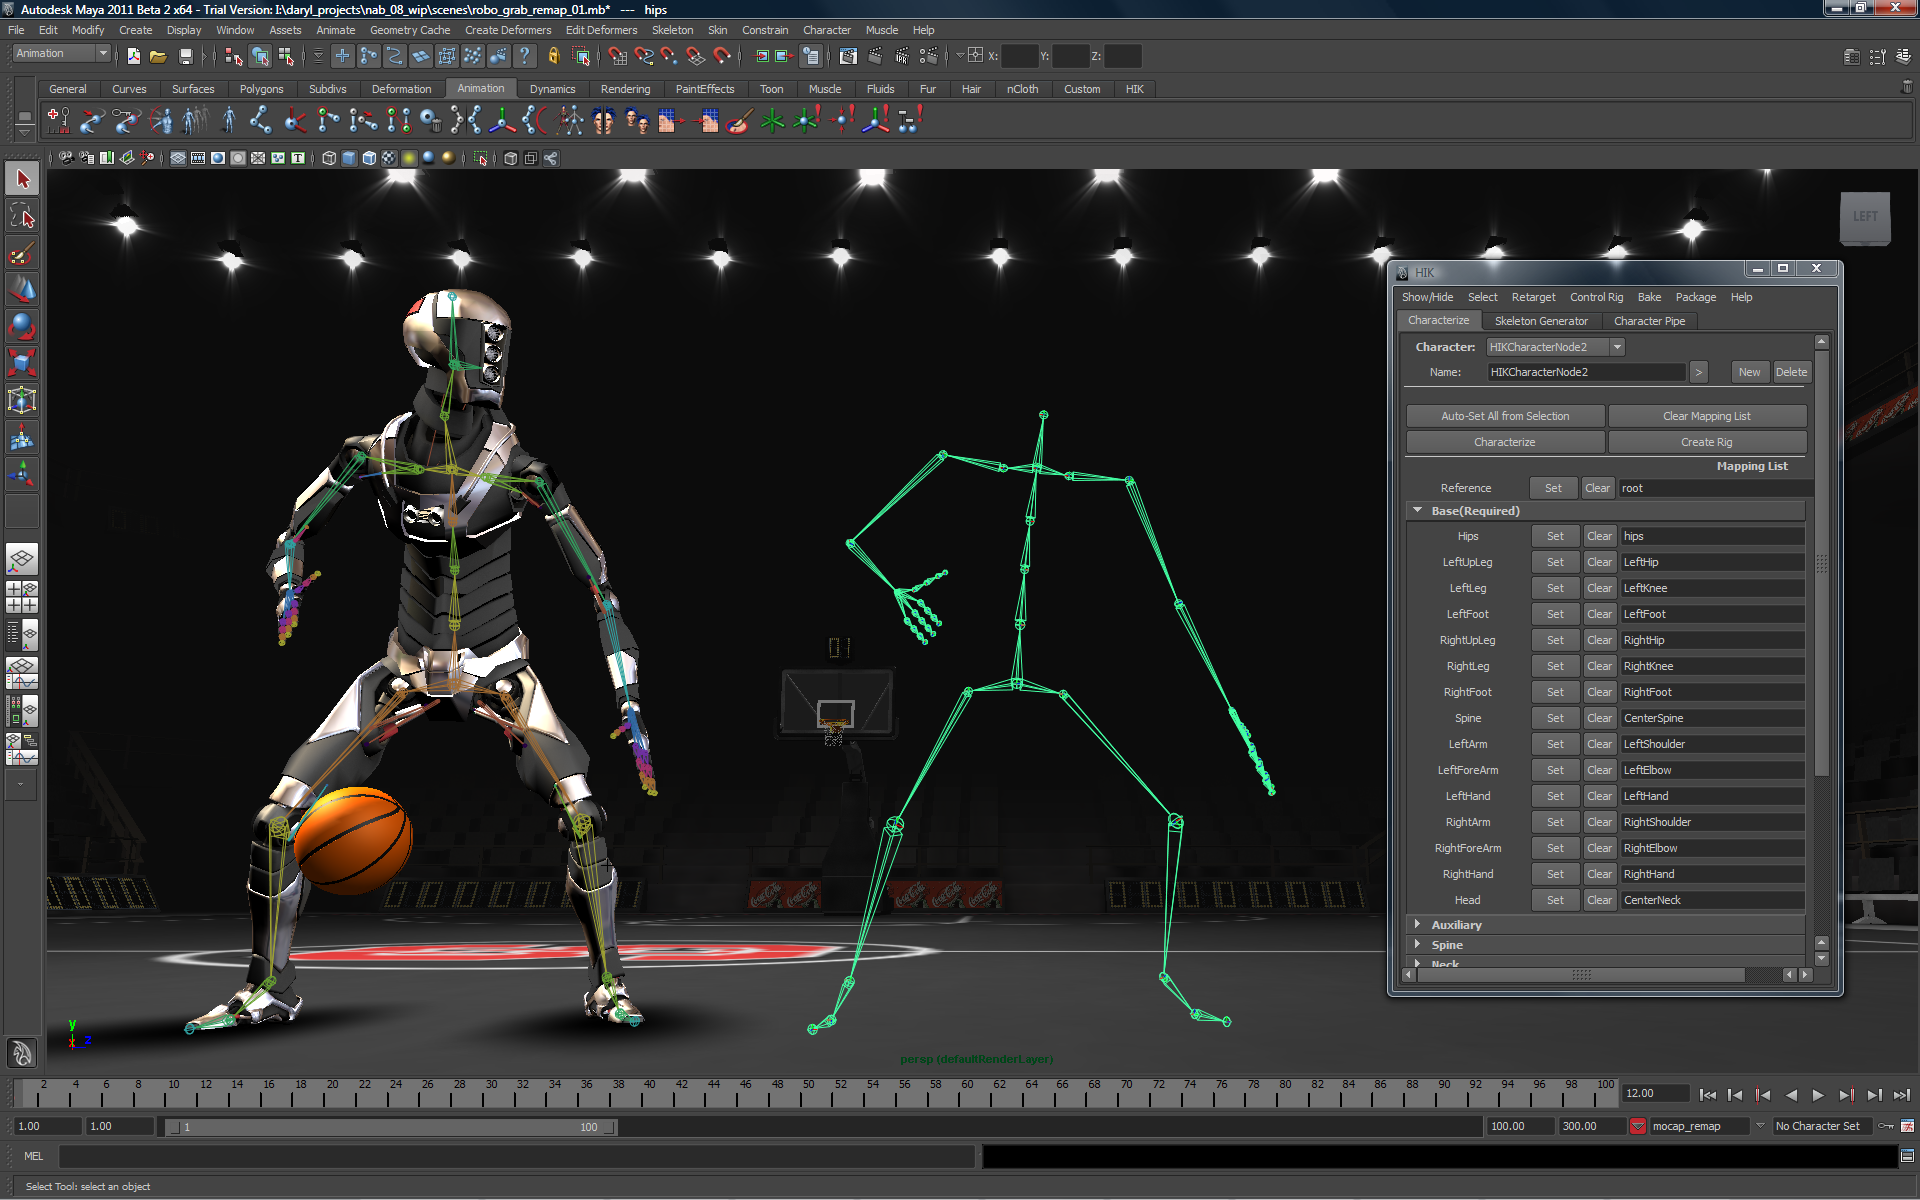 A screenshot of the interface used in a 3D modelling